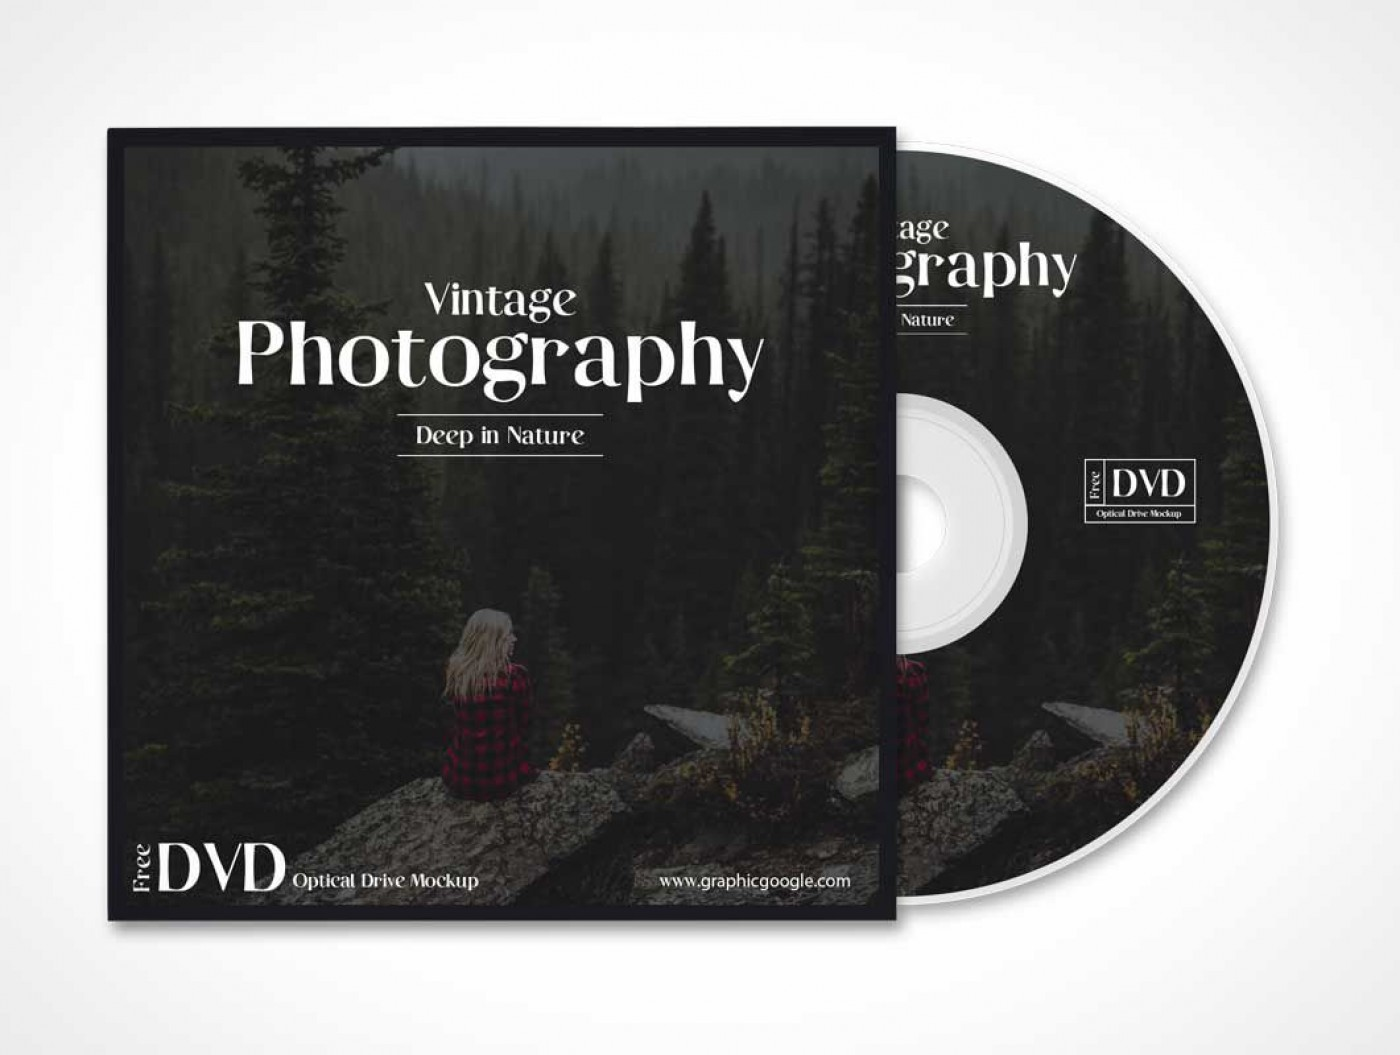 008 Unusual Free Cd Cover Design Template Photoshop Concept  Label Psd Download1400